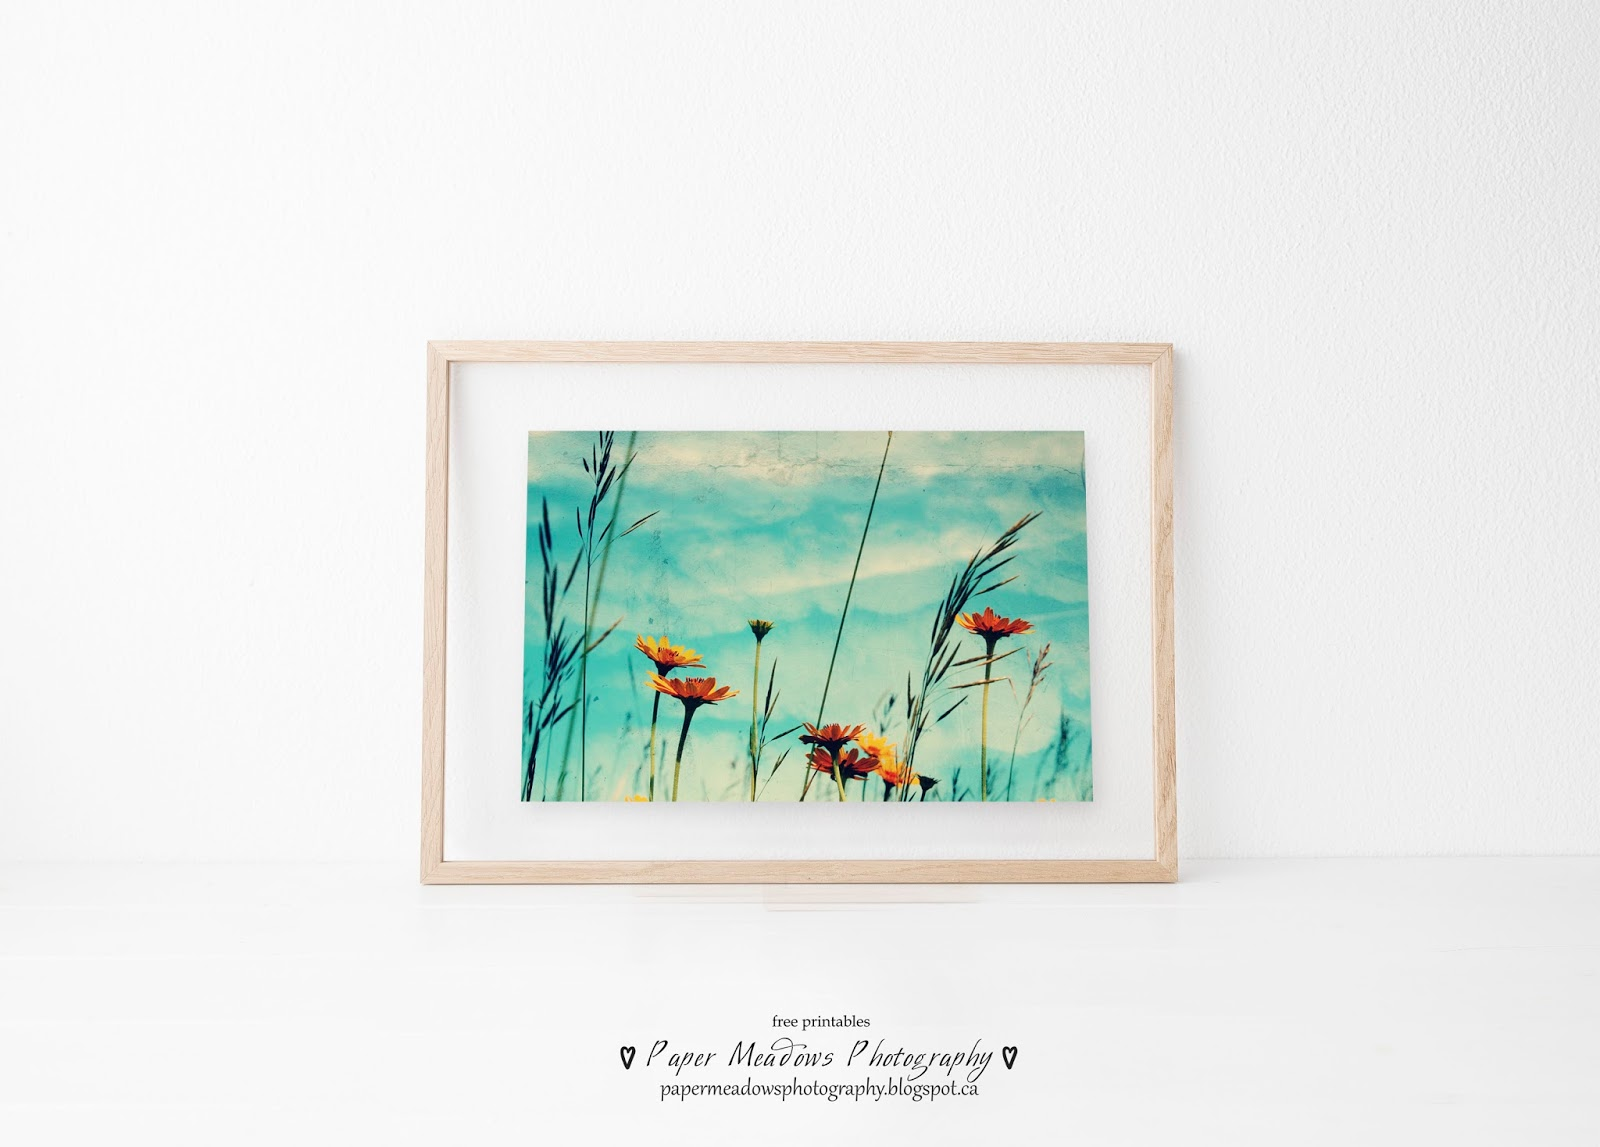 photo relating to Free Printable Wall Art Flowers called Paper Meadows Pictures: Free of charge Nursery Image Artwork of Aqua